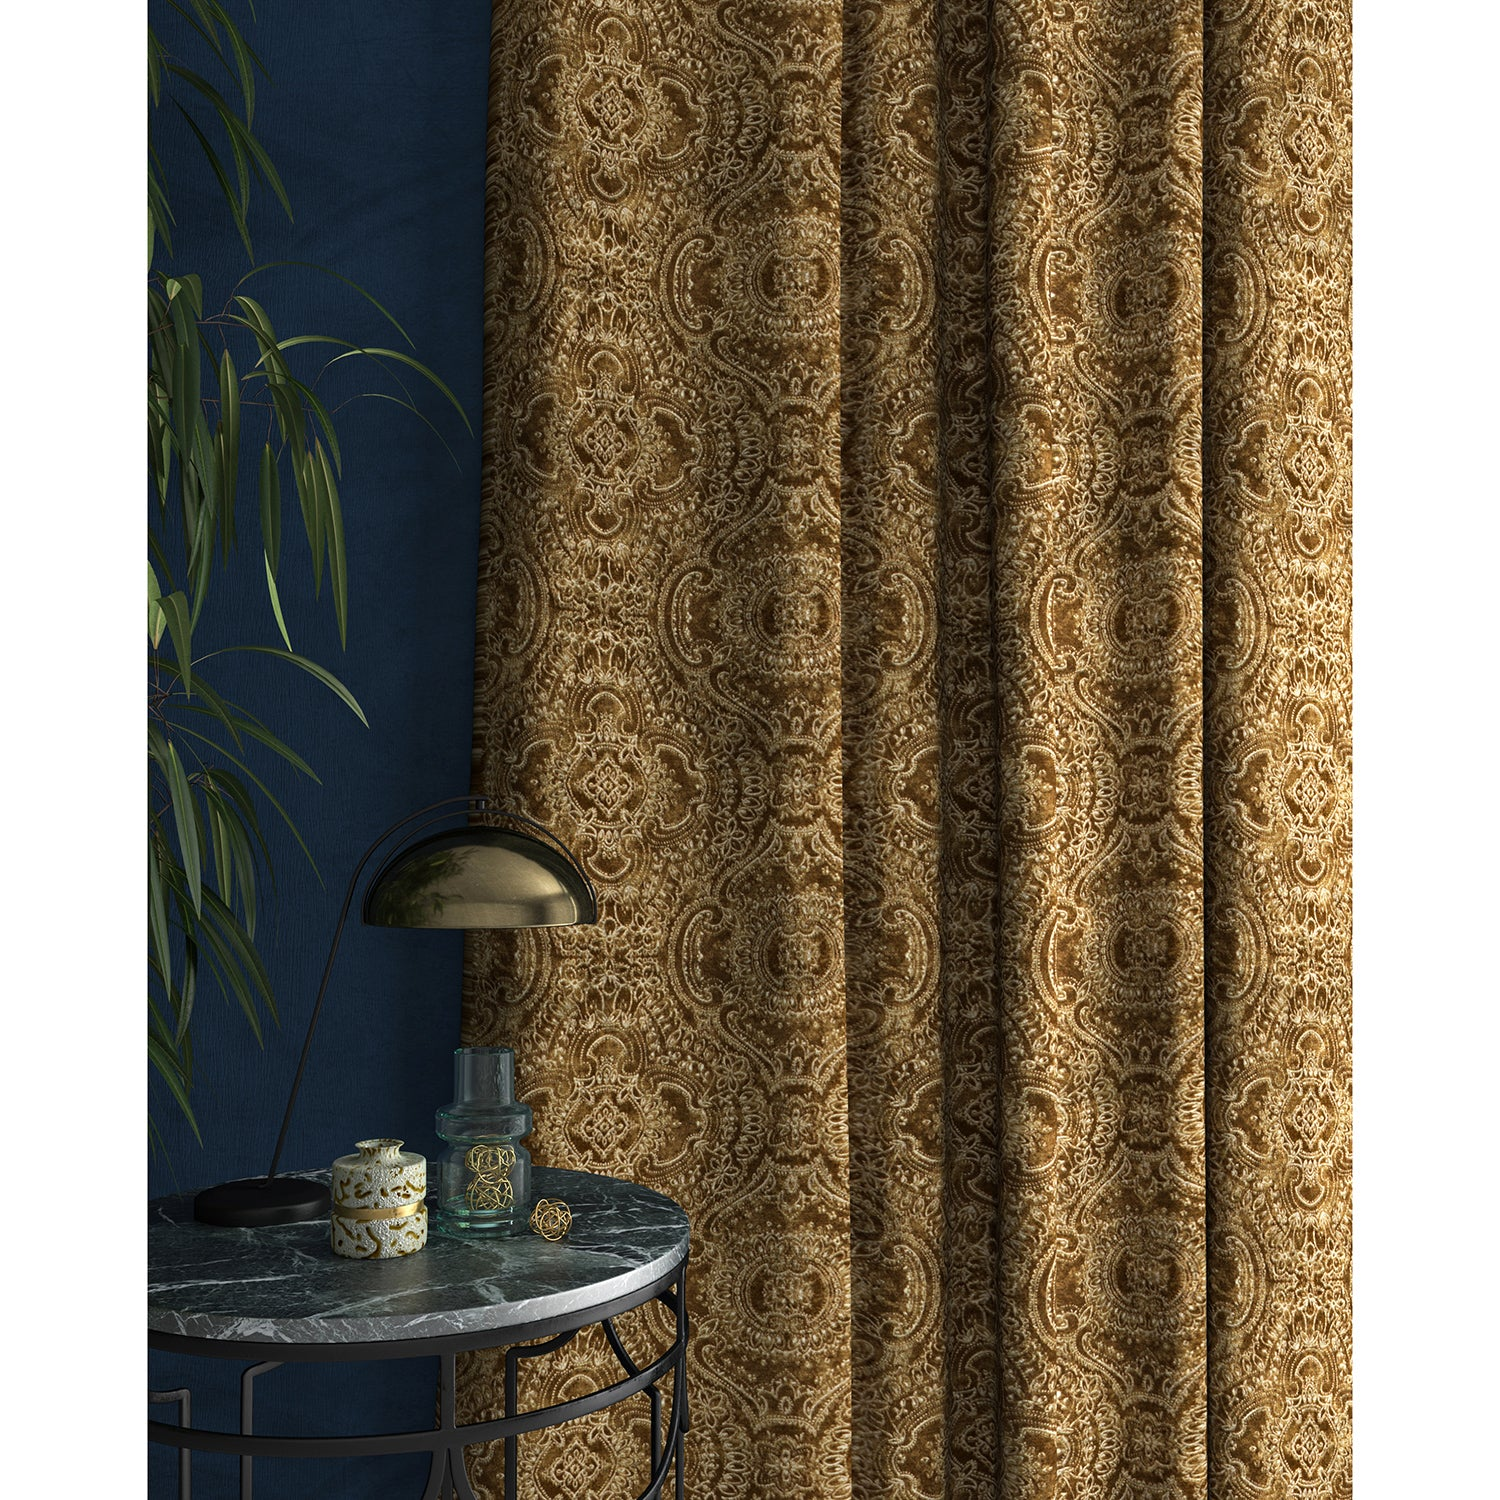 Curtain in a gold and white velvet fabric with intricate jewel design